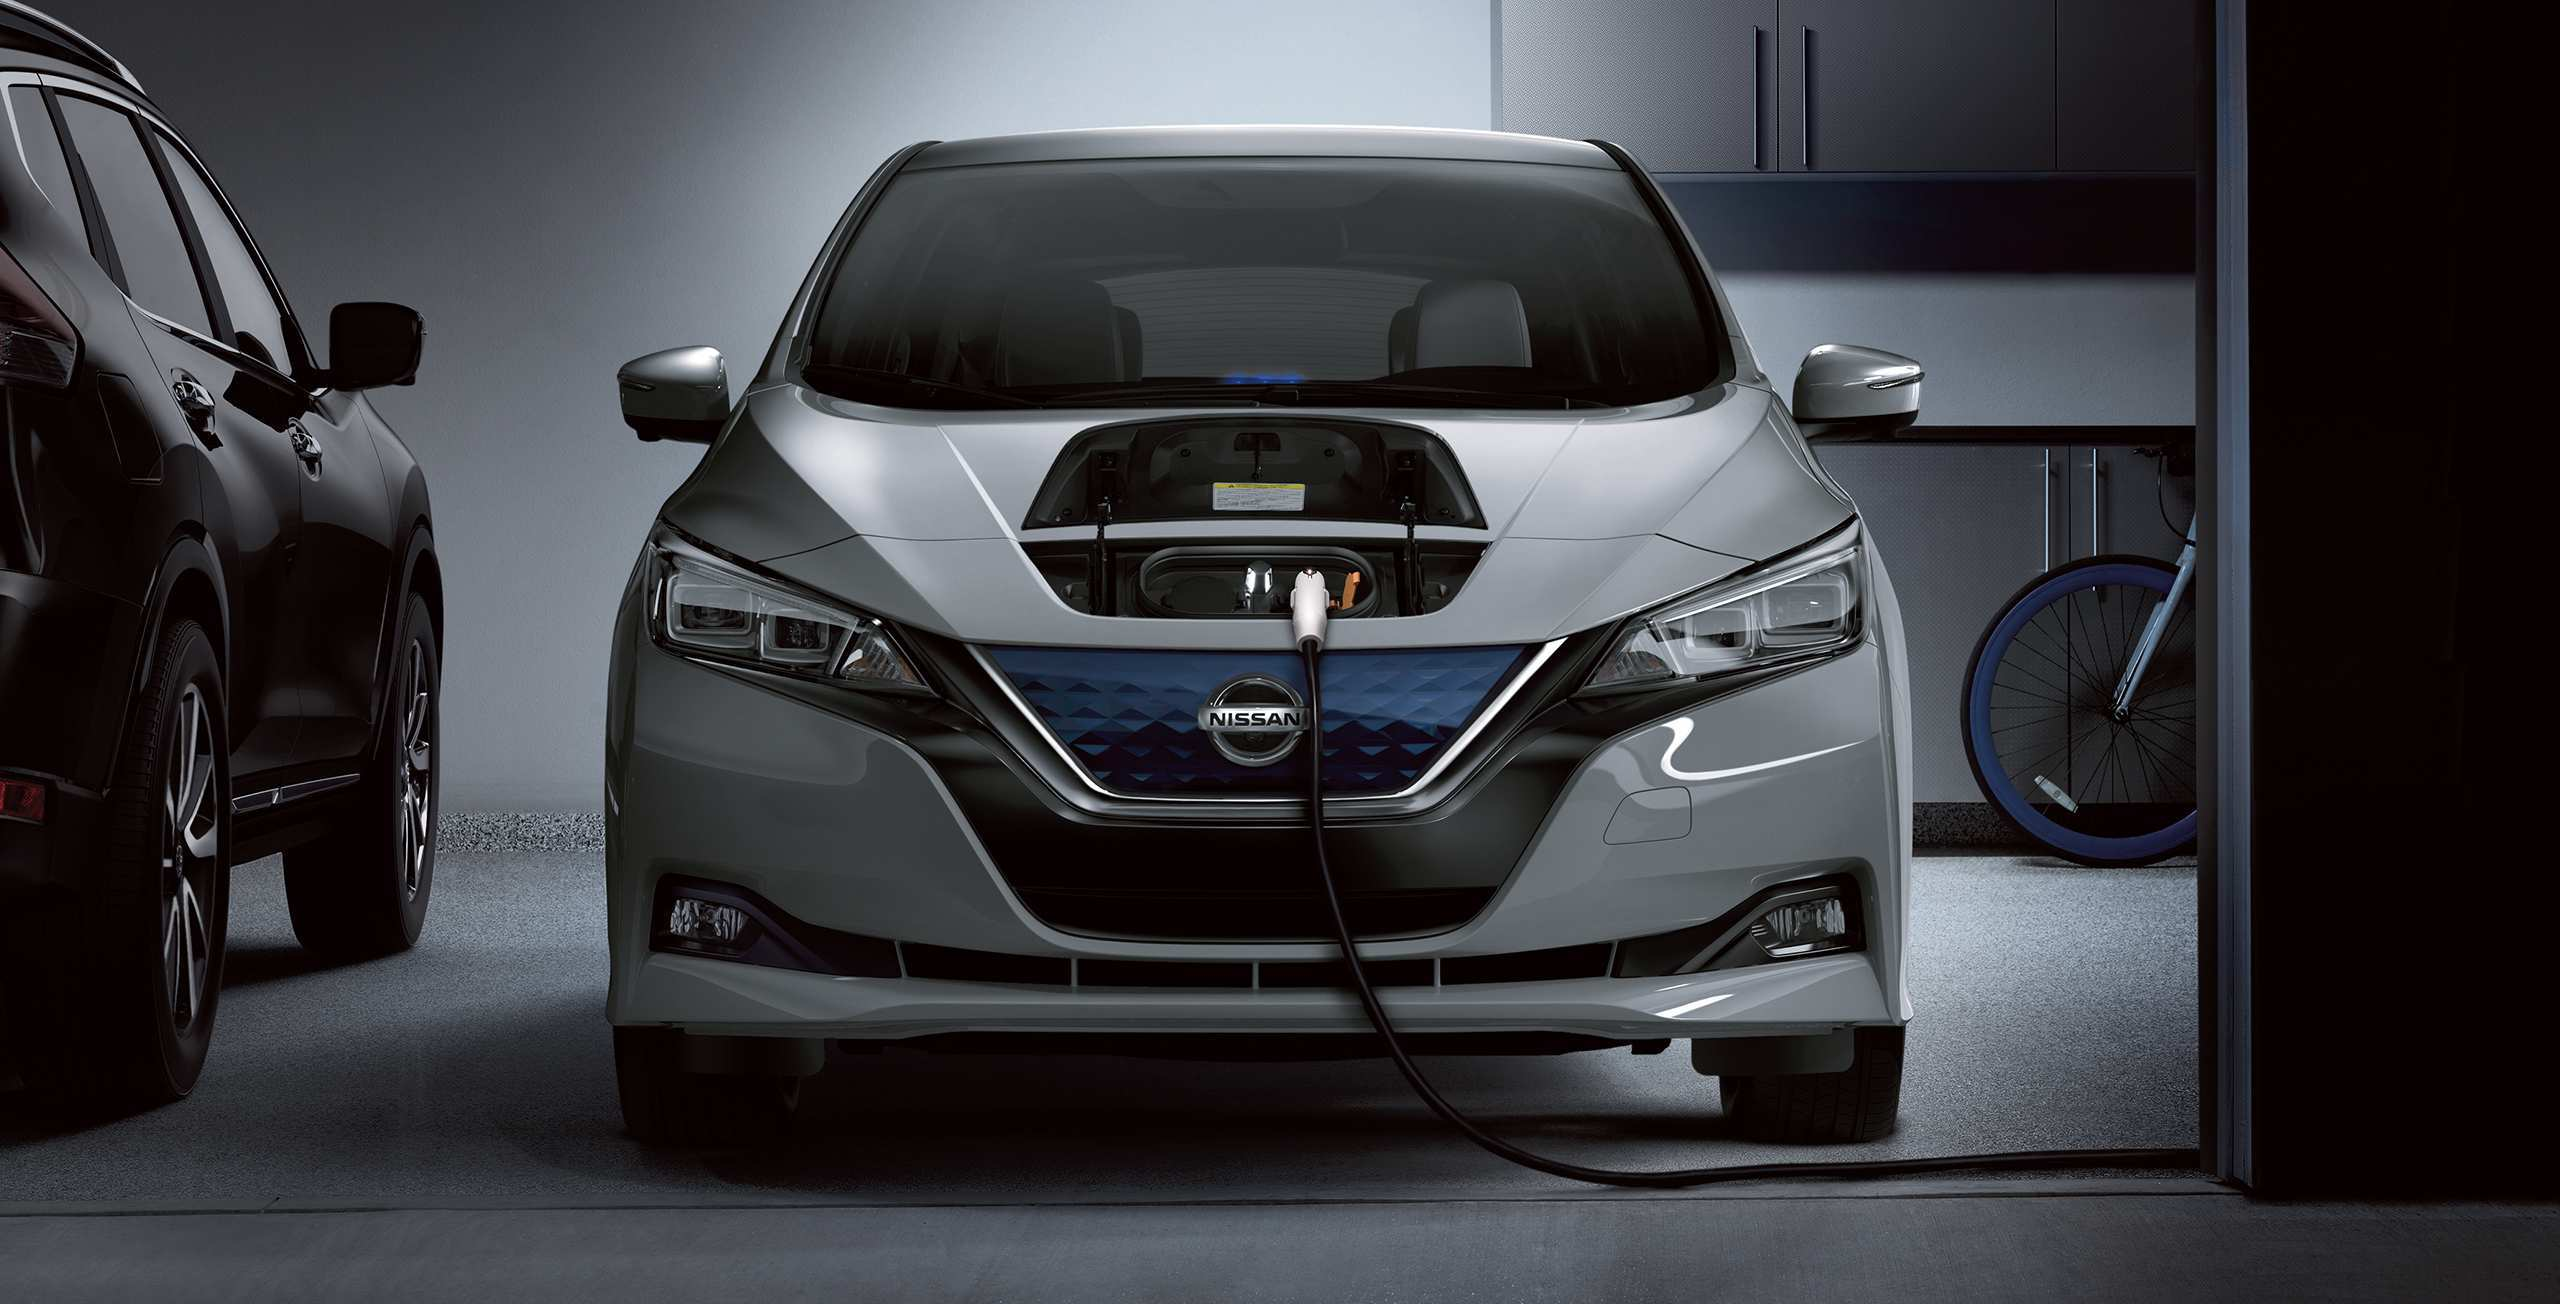 33 All New 2019 Nissan Leaf Range Release Date And Concept